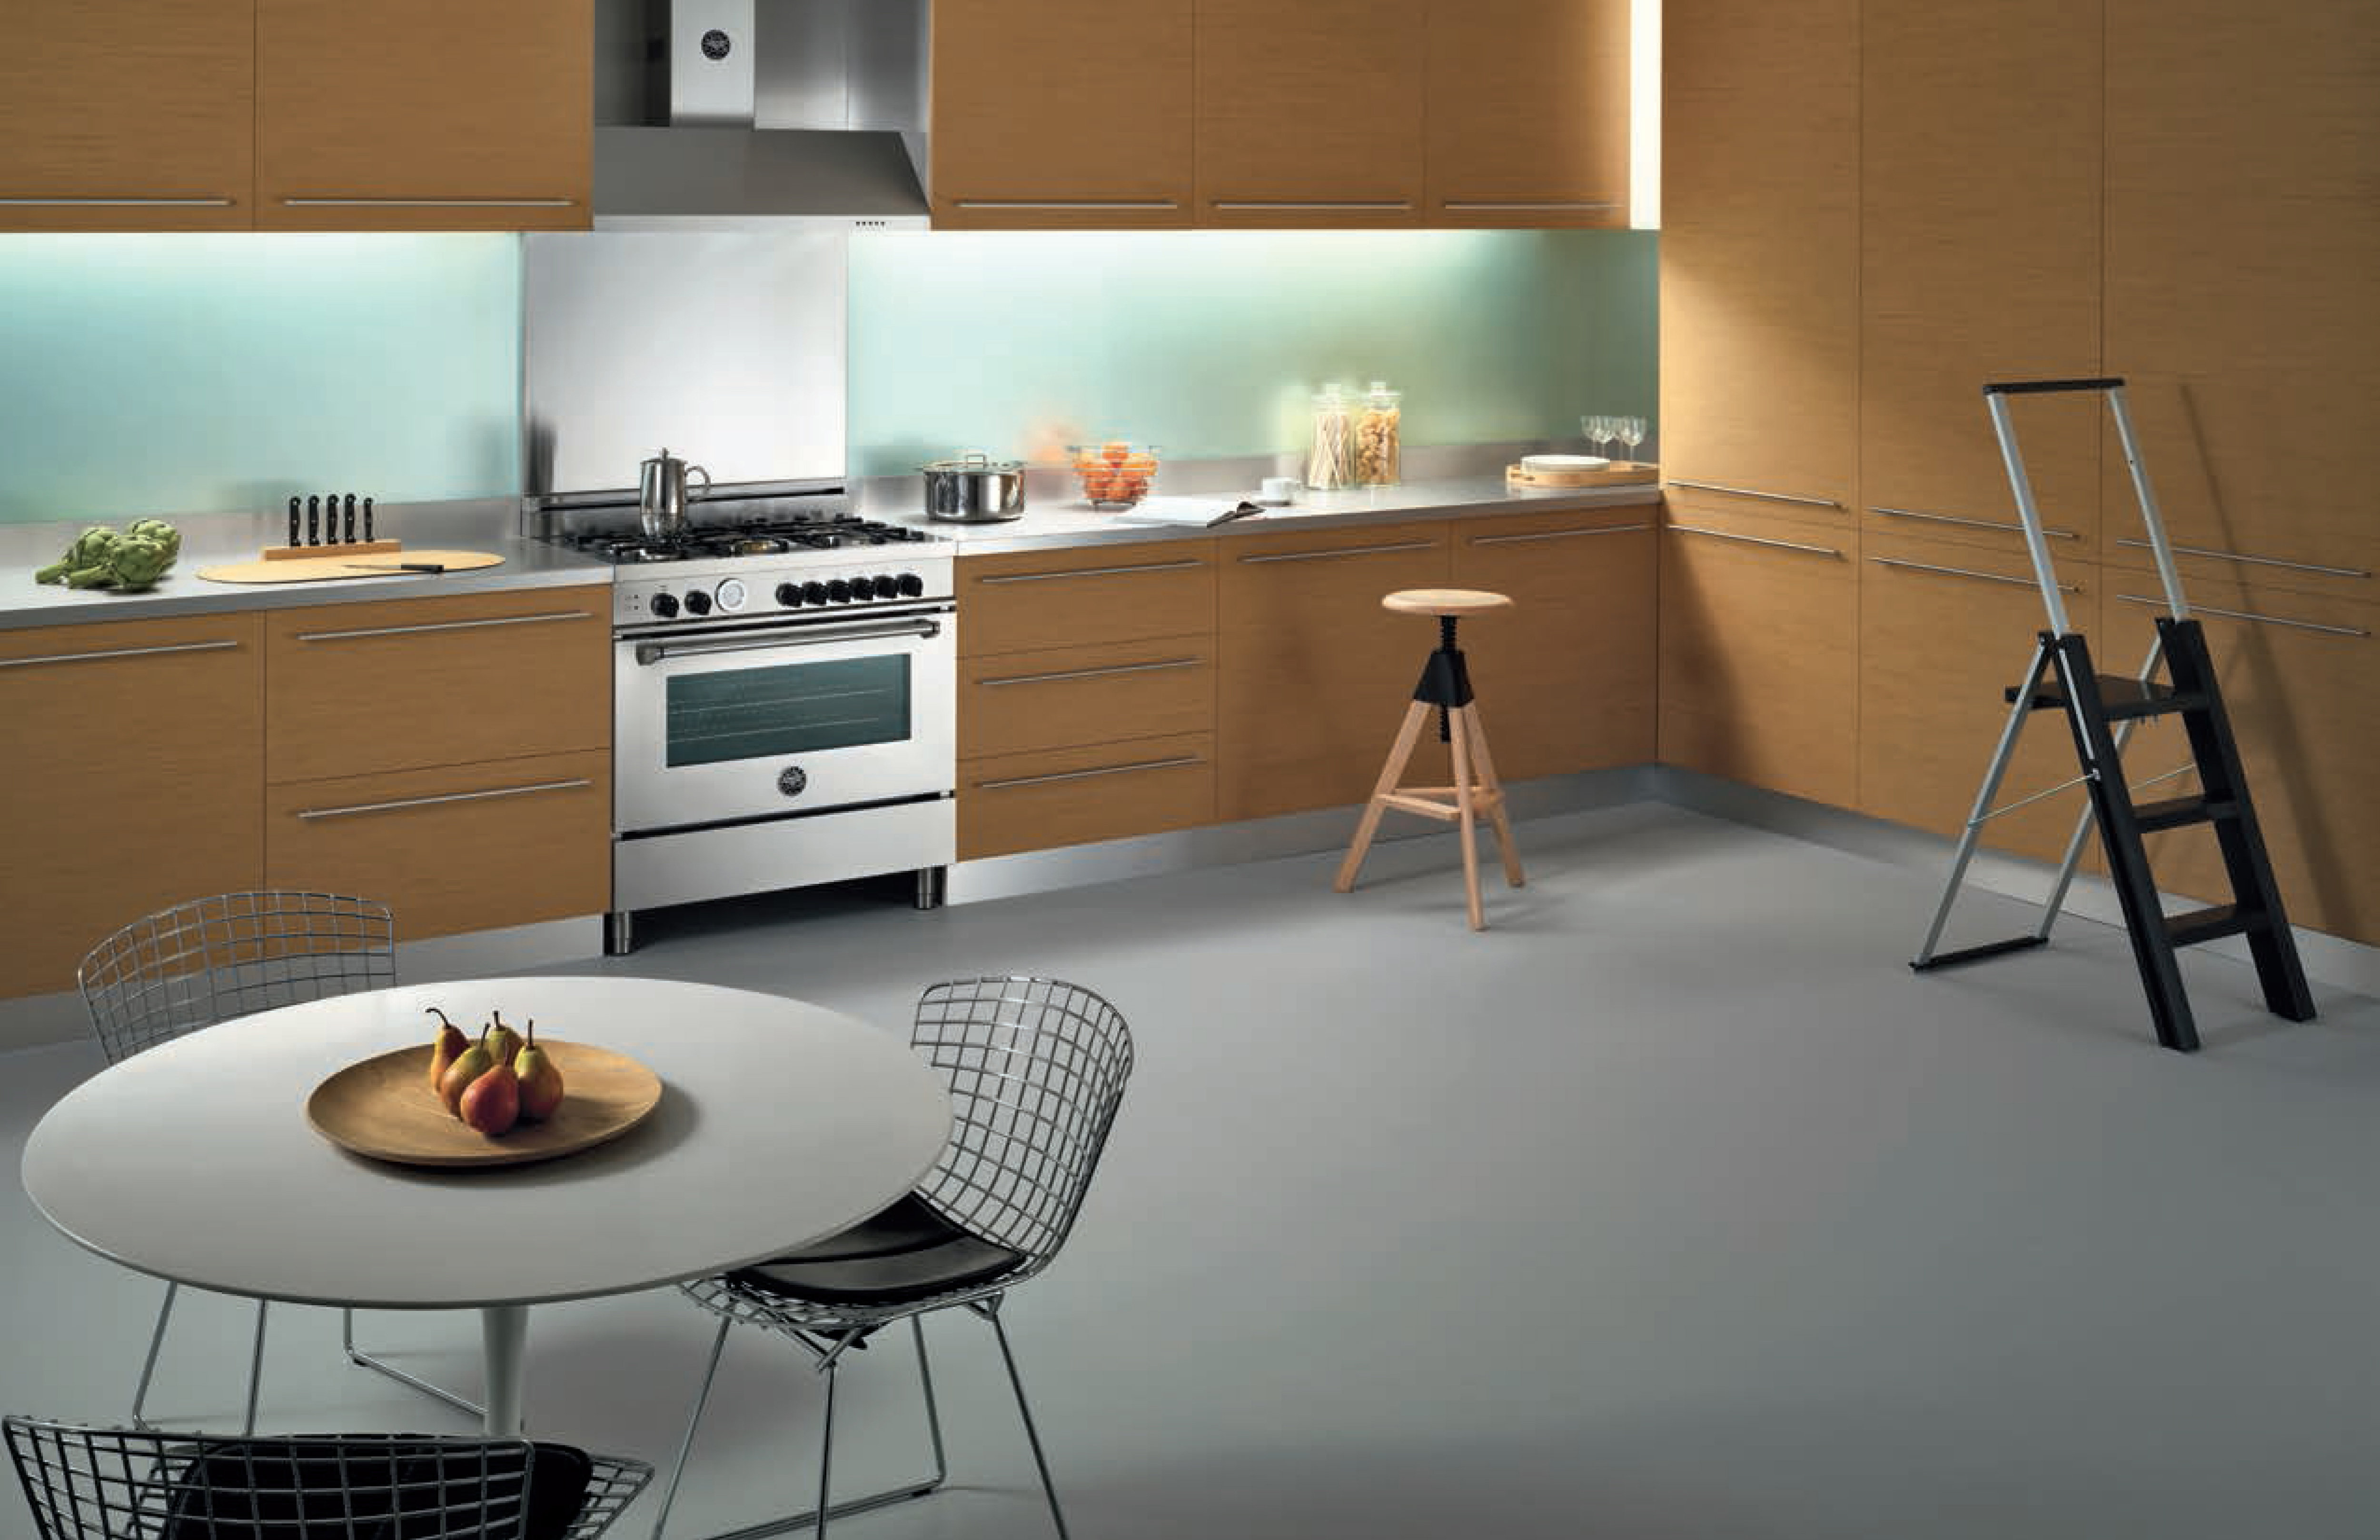 A transitional concept kitchen for Bertazzoni's Master Series.